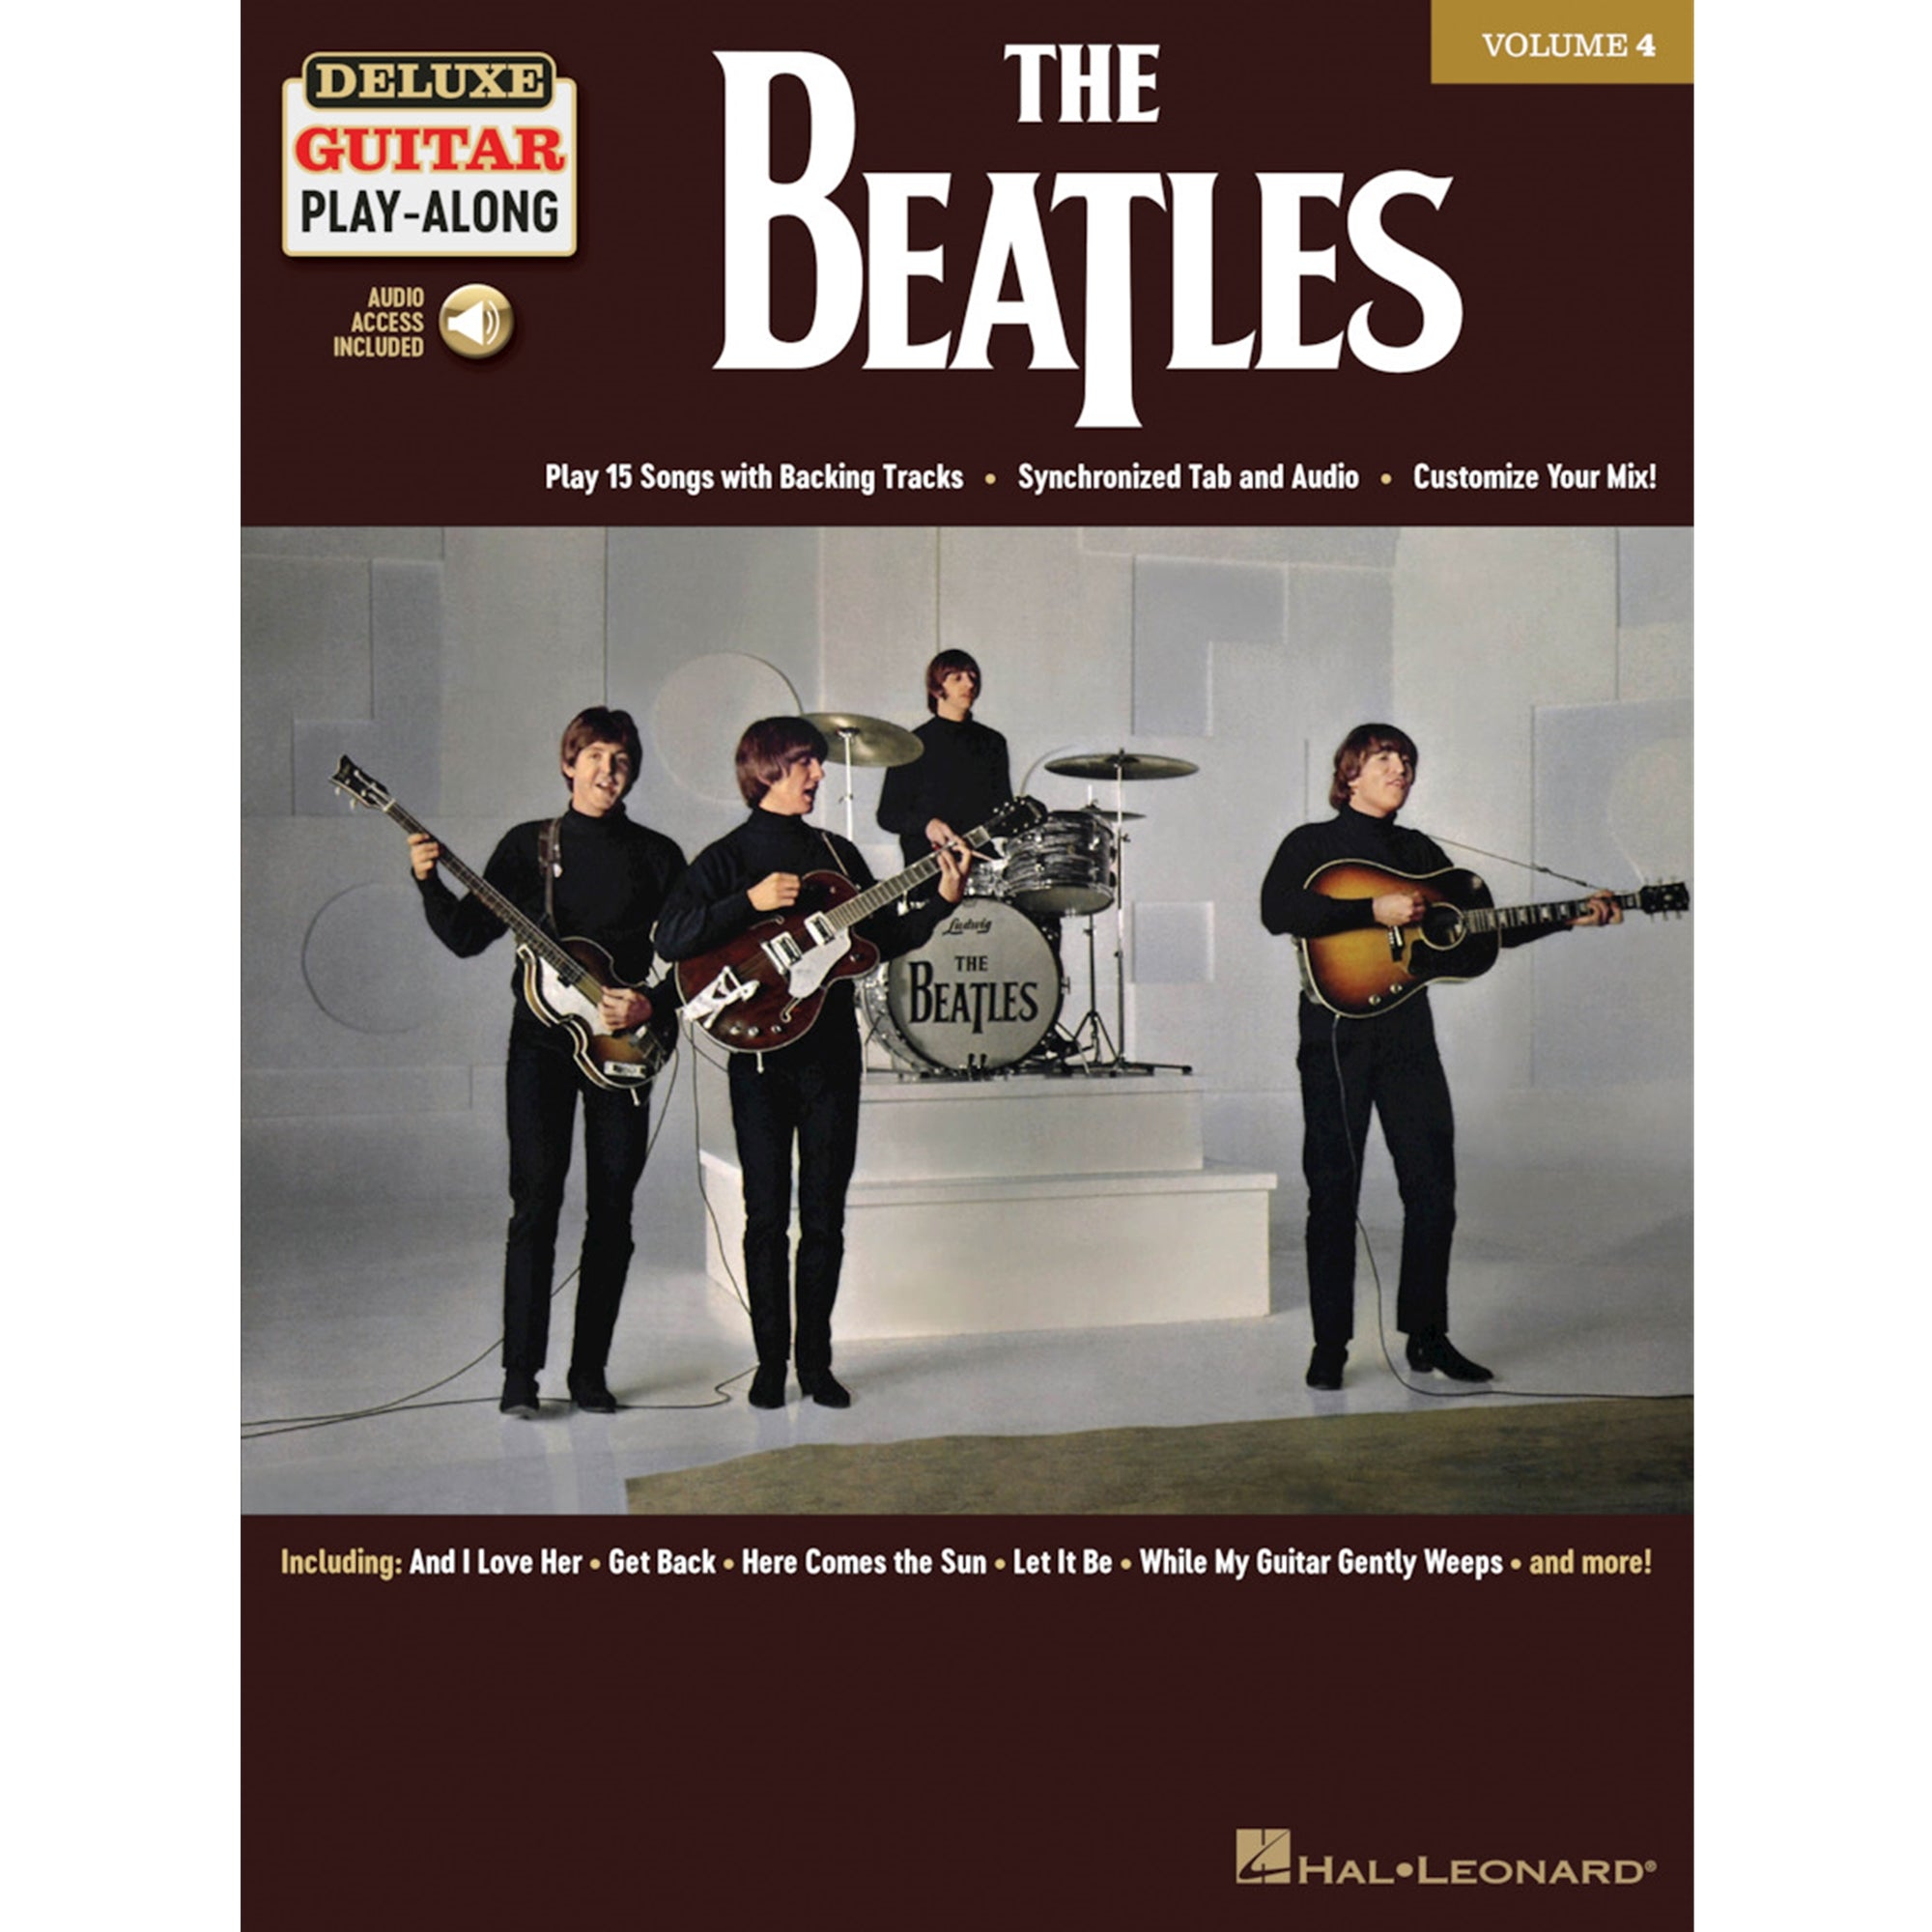 HAL LEONARD 244968 The Beatles Deluxe Guitar Play-Along Volume 4